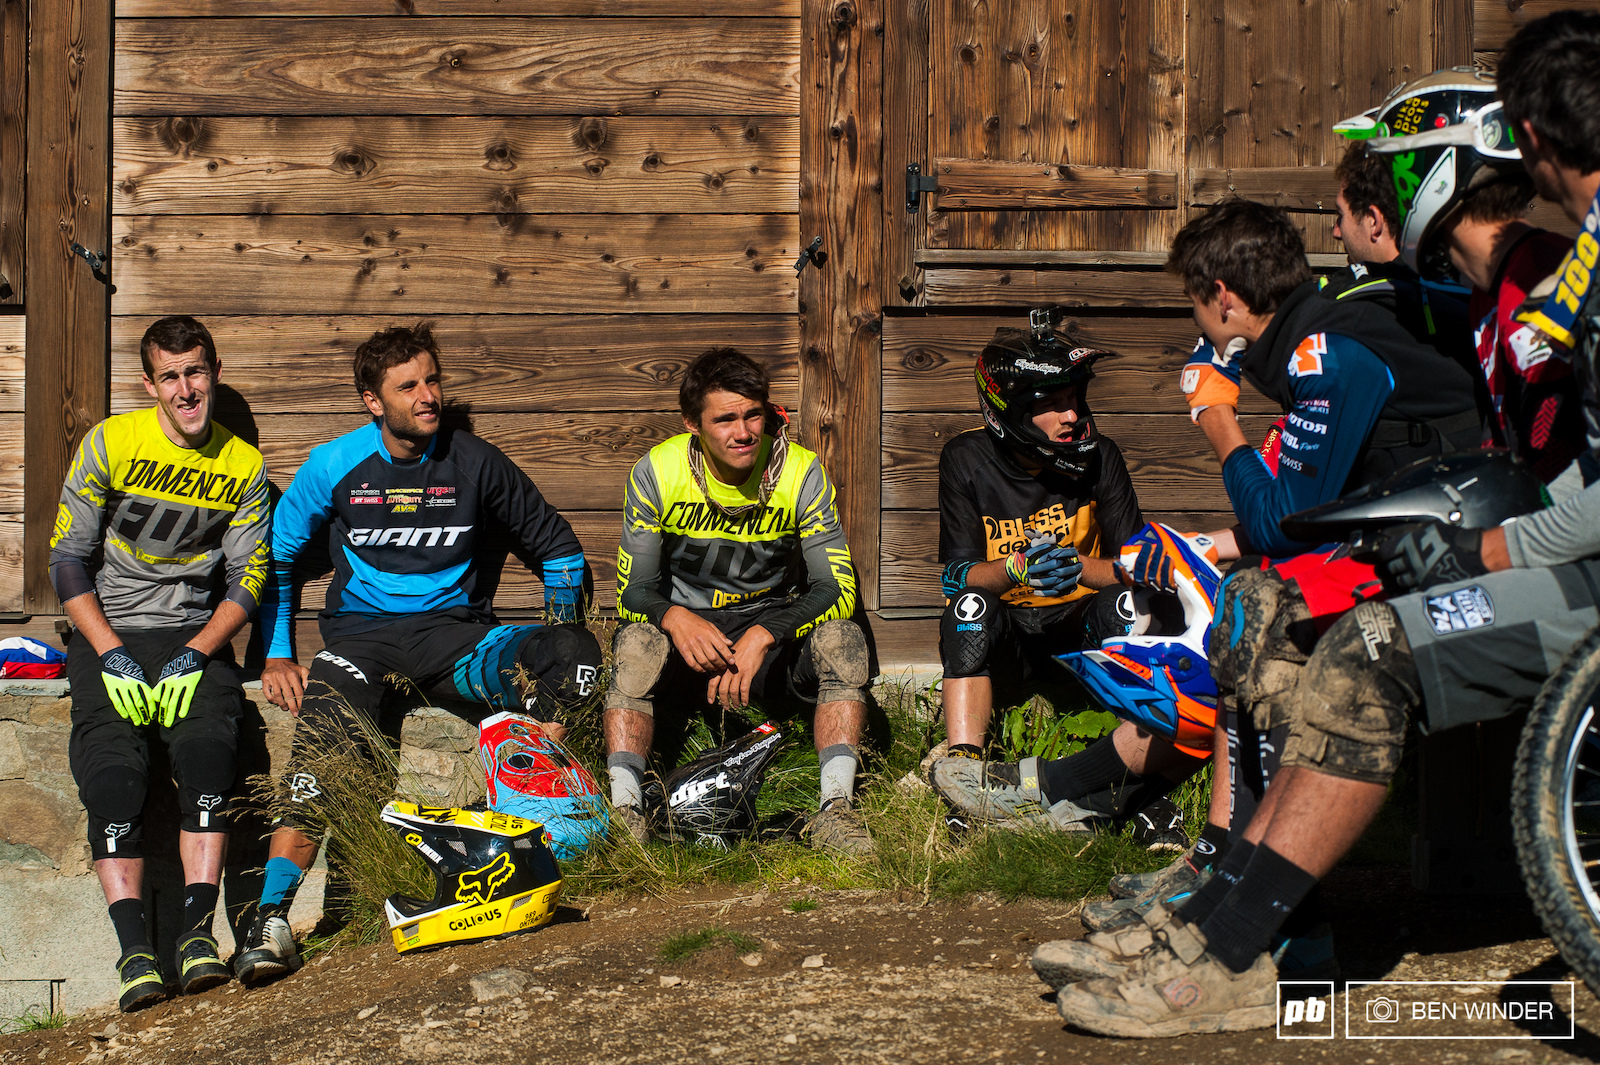 At these races there s a friendly vibe all the riders are friends and hang out together. At the top of the mountain the riders spoke about yesterday s riding and also what today might hold.